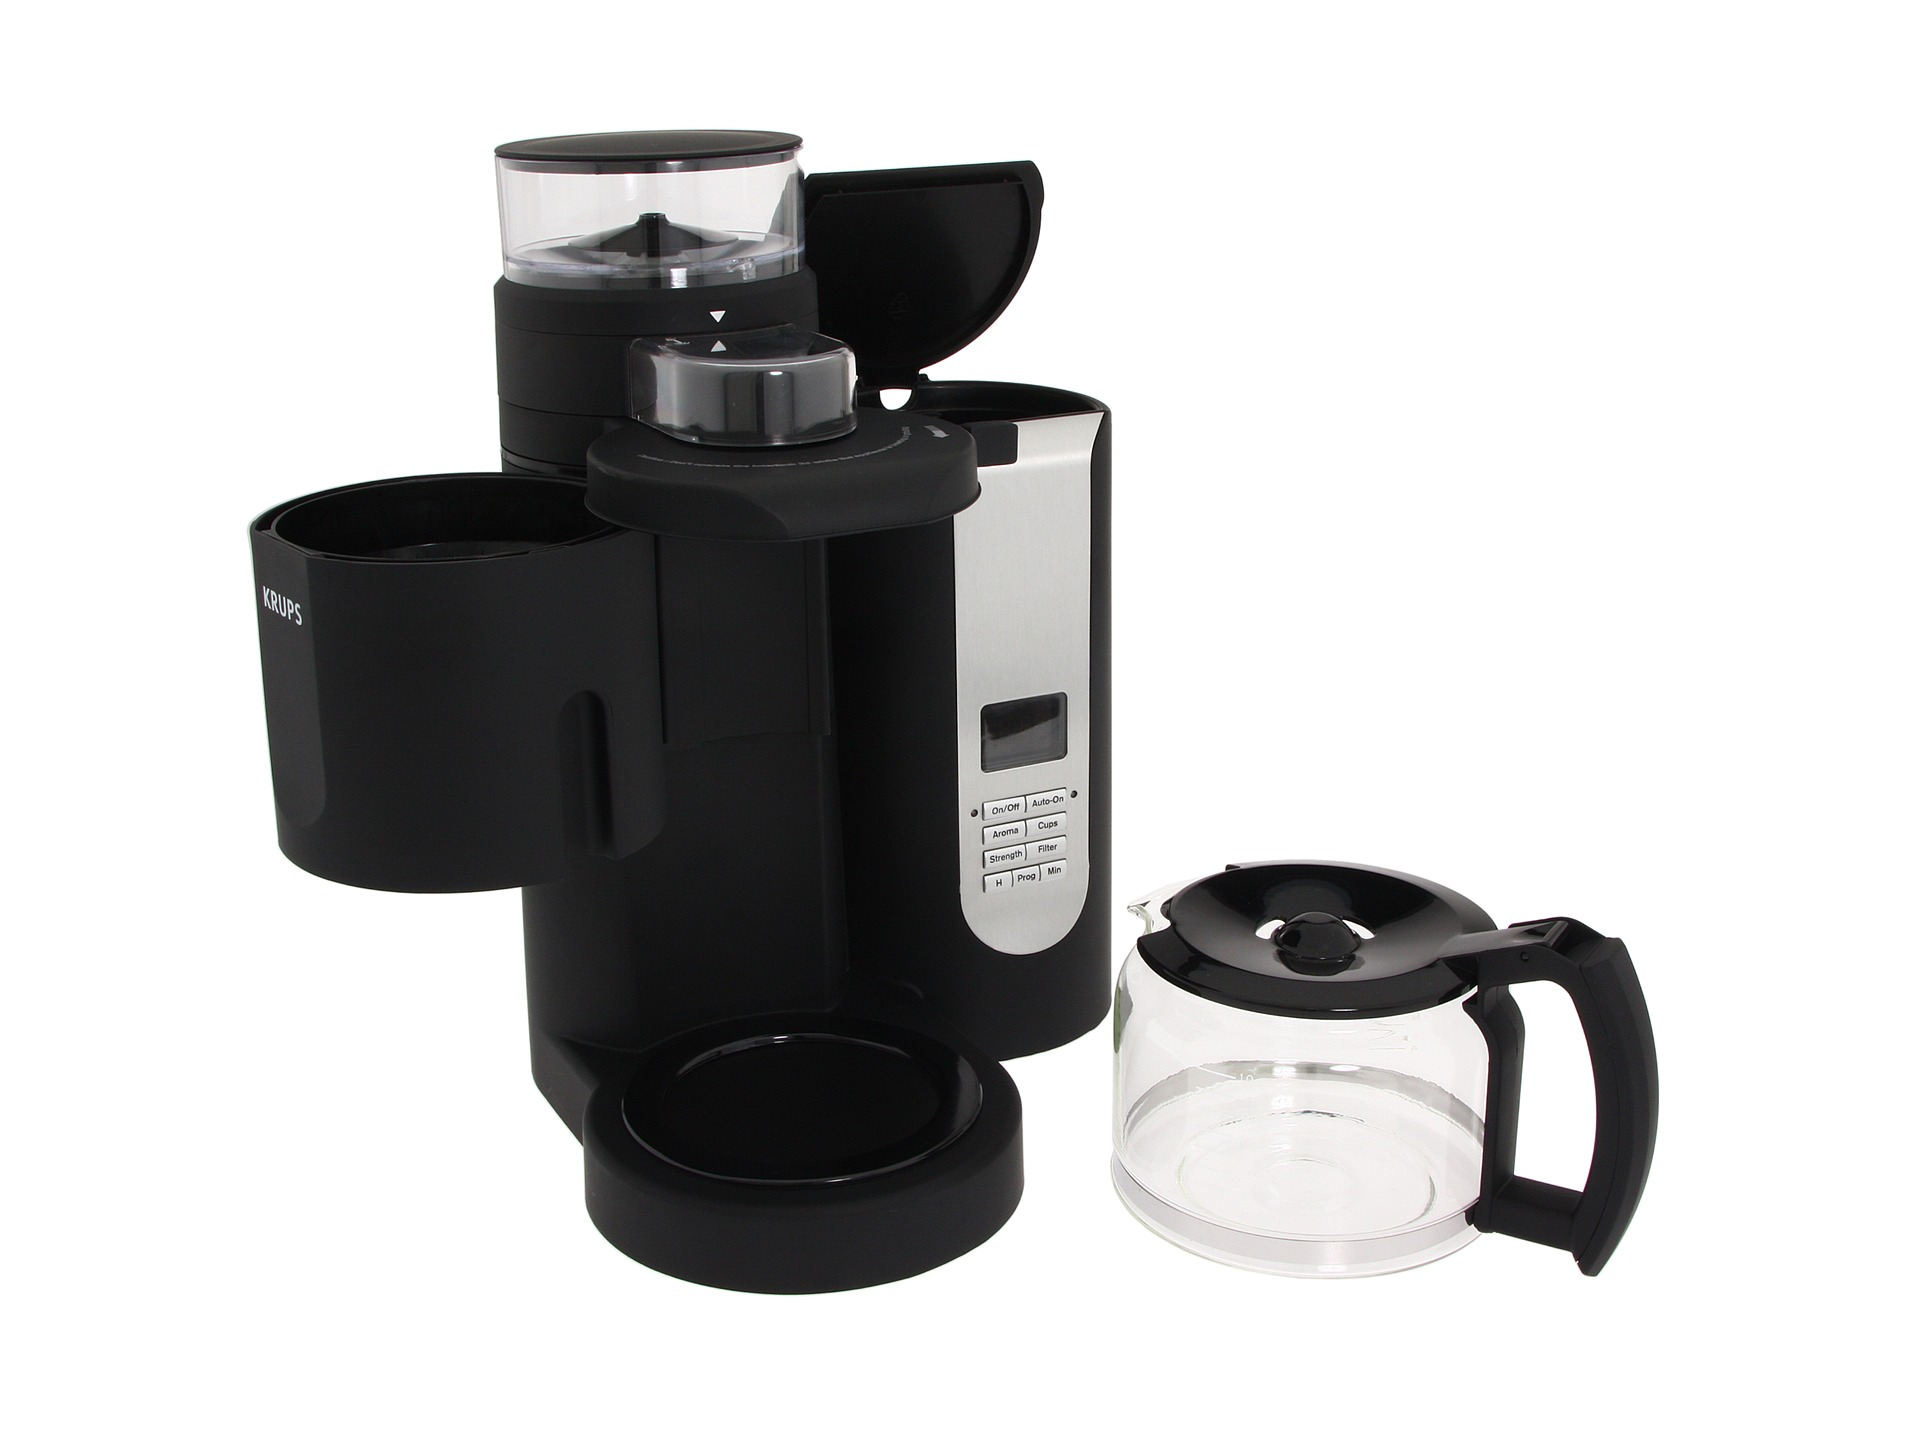 Krups Km 700 Grind And Brew Coffee Maker : Krups Km7000 Pro Grinder Brewer Black, Eyewear Shipped Free at Zappos